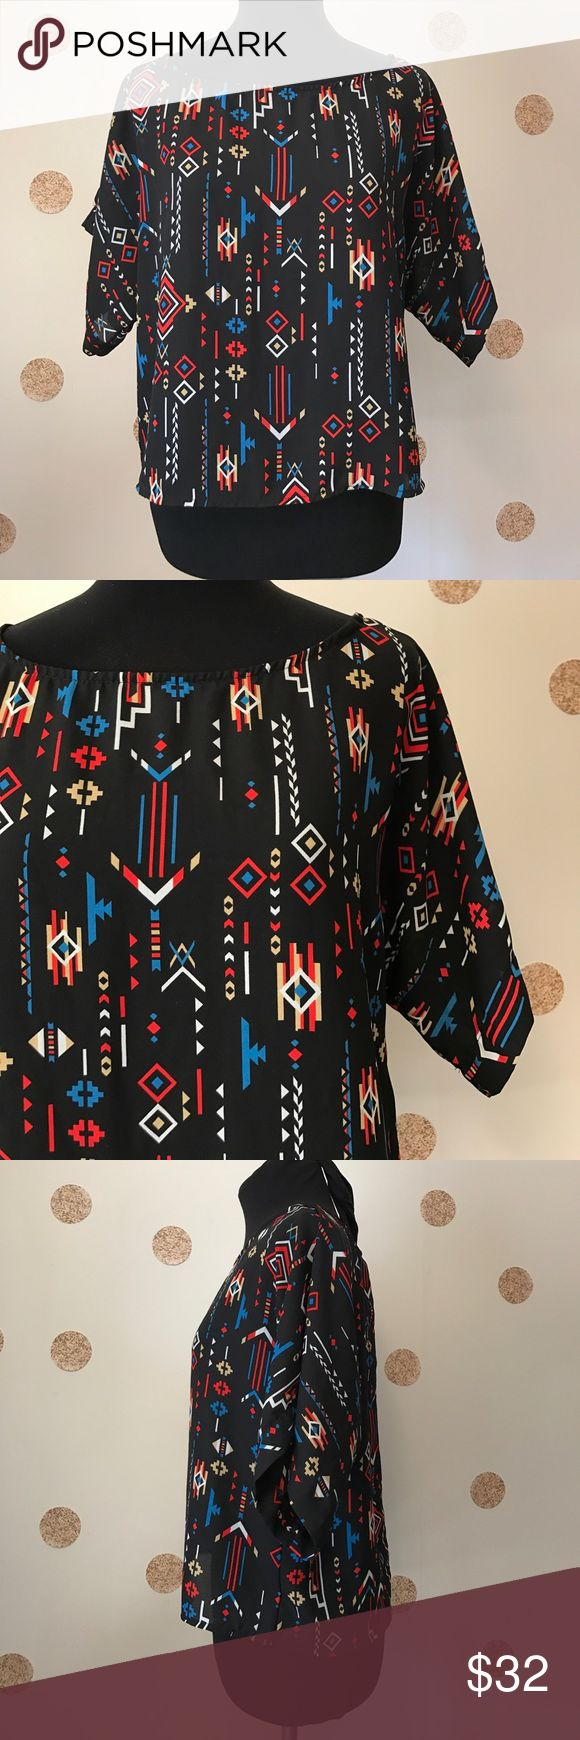 "Cantata Aztec Blouse Great shape - 9/10 condition. Not much stretch. Black. I can't read the tag so unsure of details. Soft flowy material.   Appx measurements taken by me while item is laying flat :  Underarm to underarm - 20"" Shoulder to hem - 20"" Underarm to end of sleeve - 5.5""  Please don't hesitate to ask questions Cantata Tops"